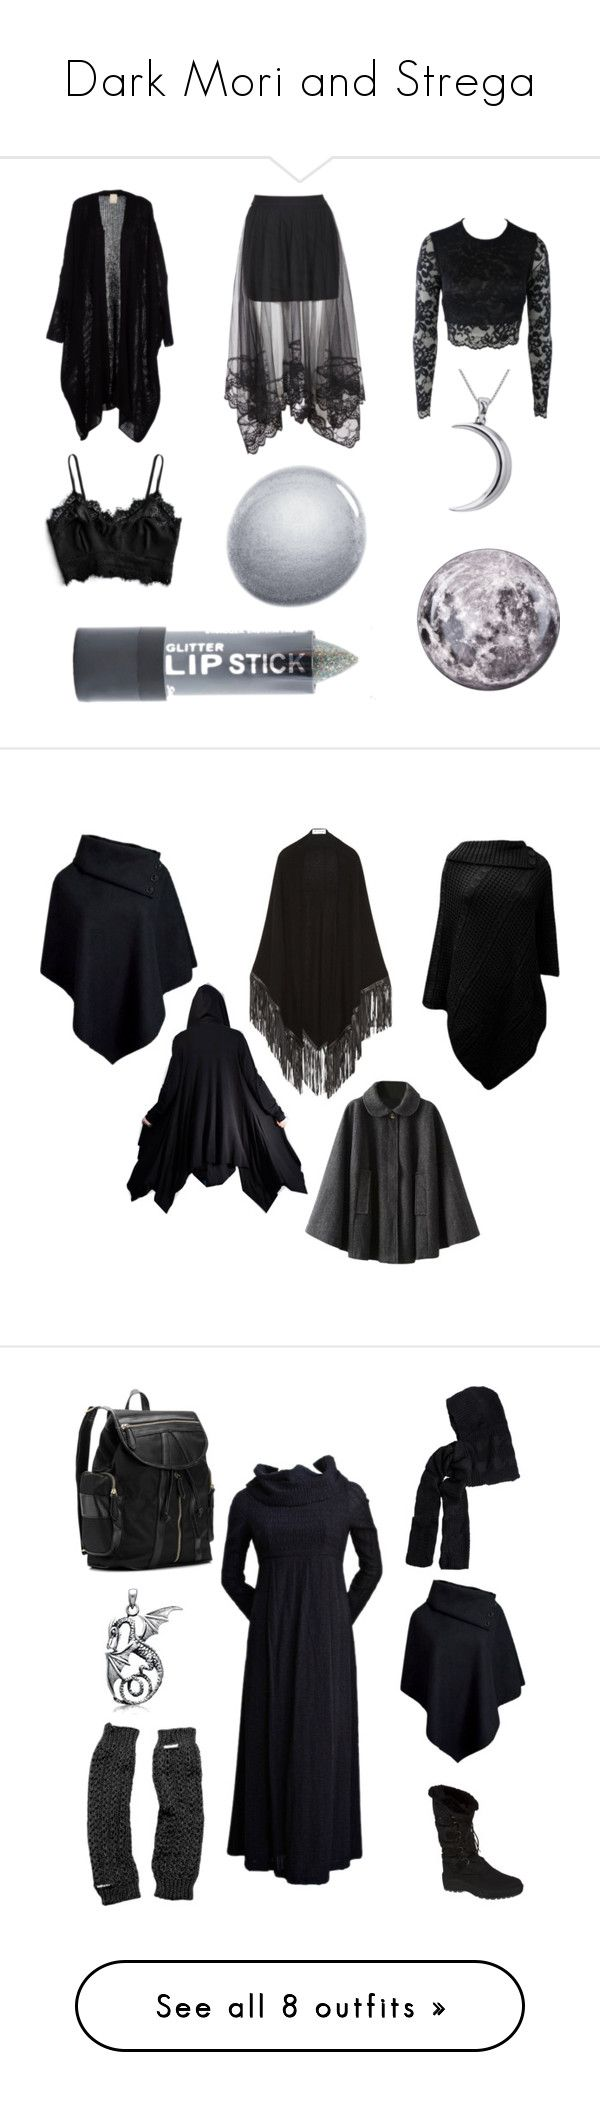 """""""Dark Mori and Strega"""" by yasmeenscales ❤ liked on Polyvore featuring Bec & Bridge, NARS Cosmetics, Stargazer, Carolina Glamour Collection, Seletti, CO, Romeo Gigli, Pajar, Pieces and Madden Girl"""